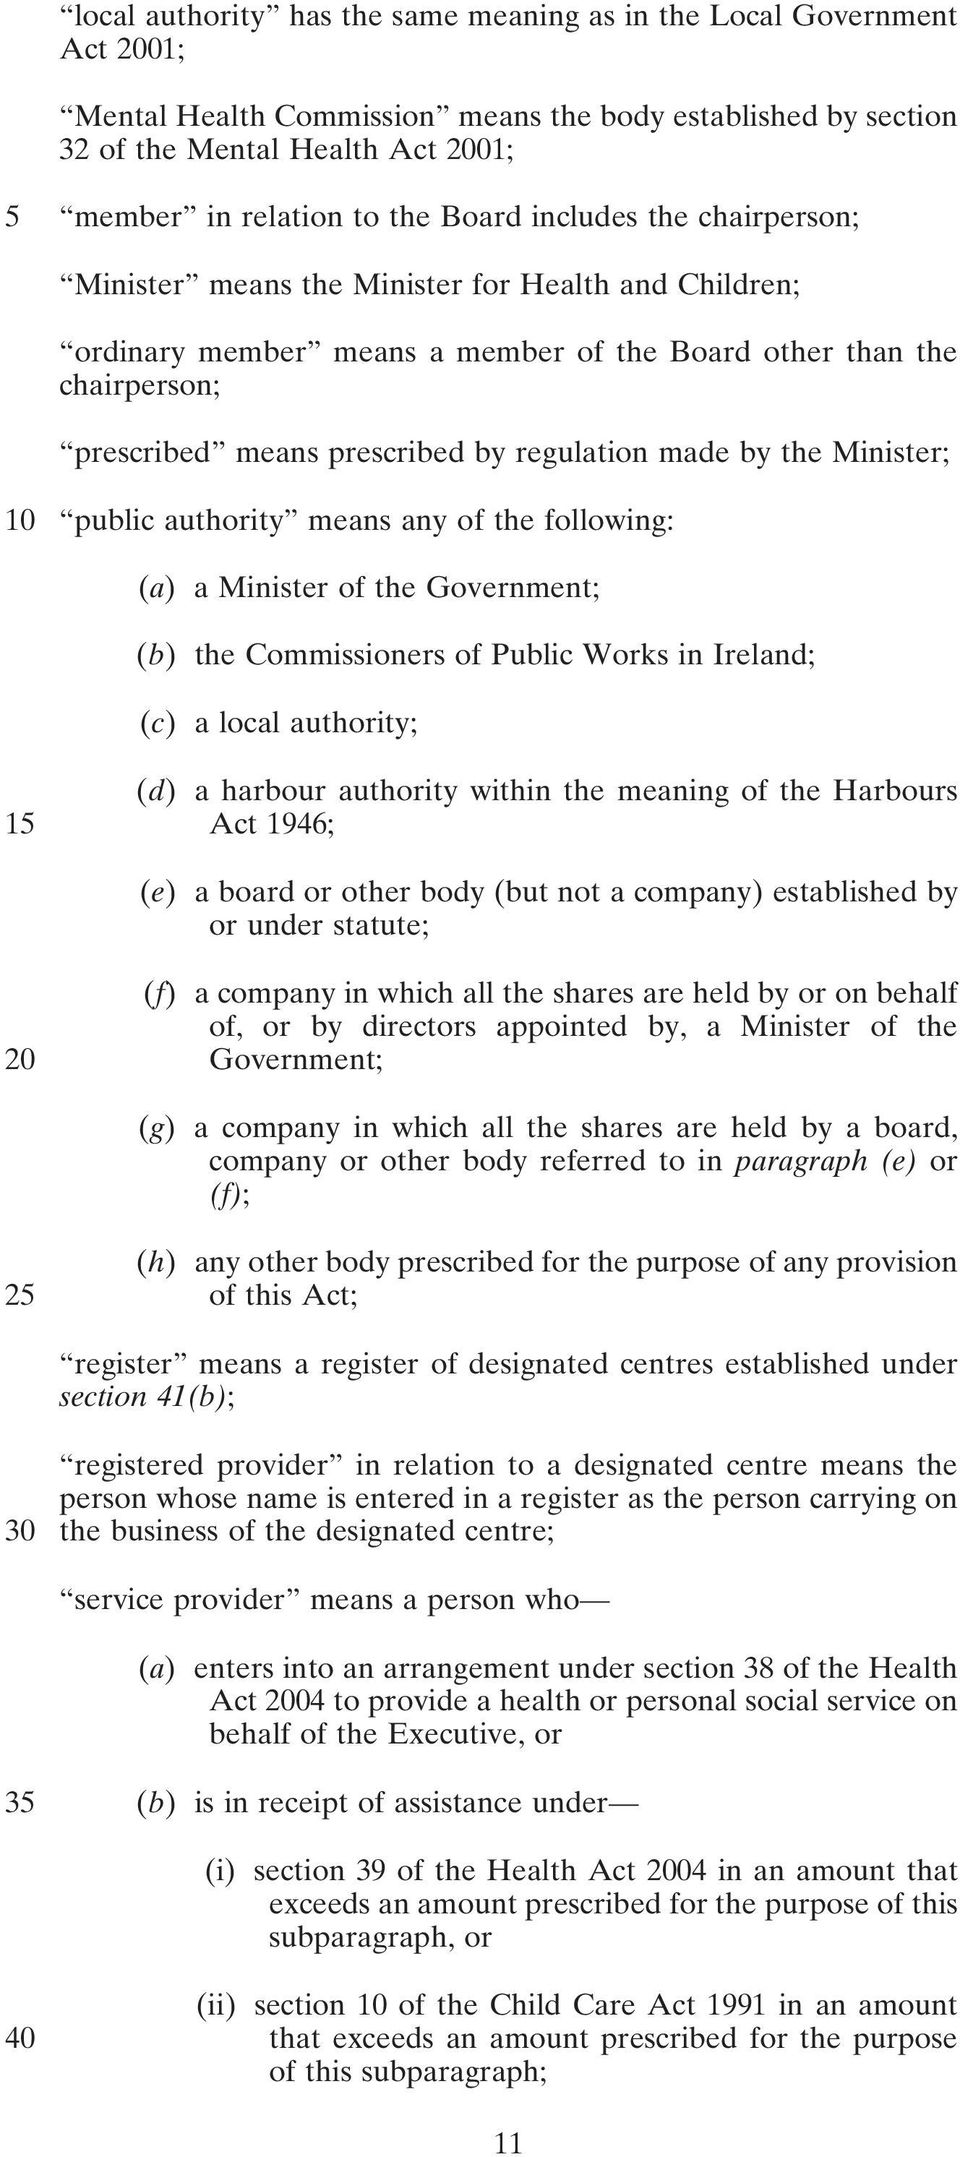 made by the Minister; 10 public authority means any of the following: (a) a Minister of the Government; (b) the Commissioners of Public Works in Ireland; (c) a local authority; 15 (d) a harbour